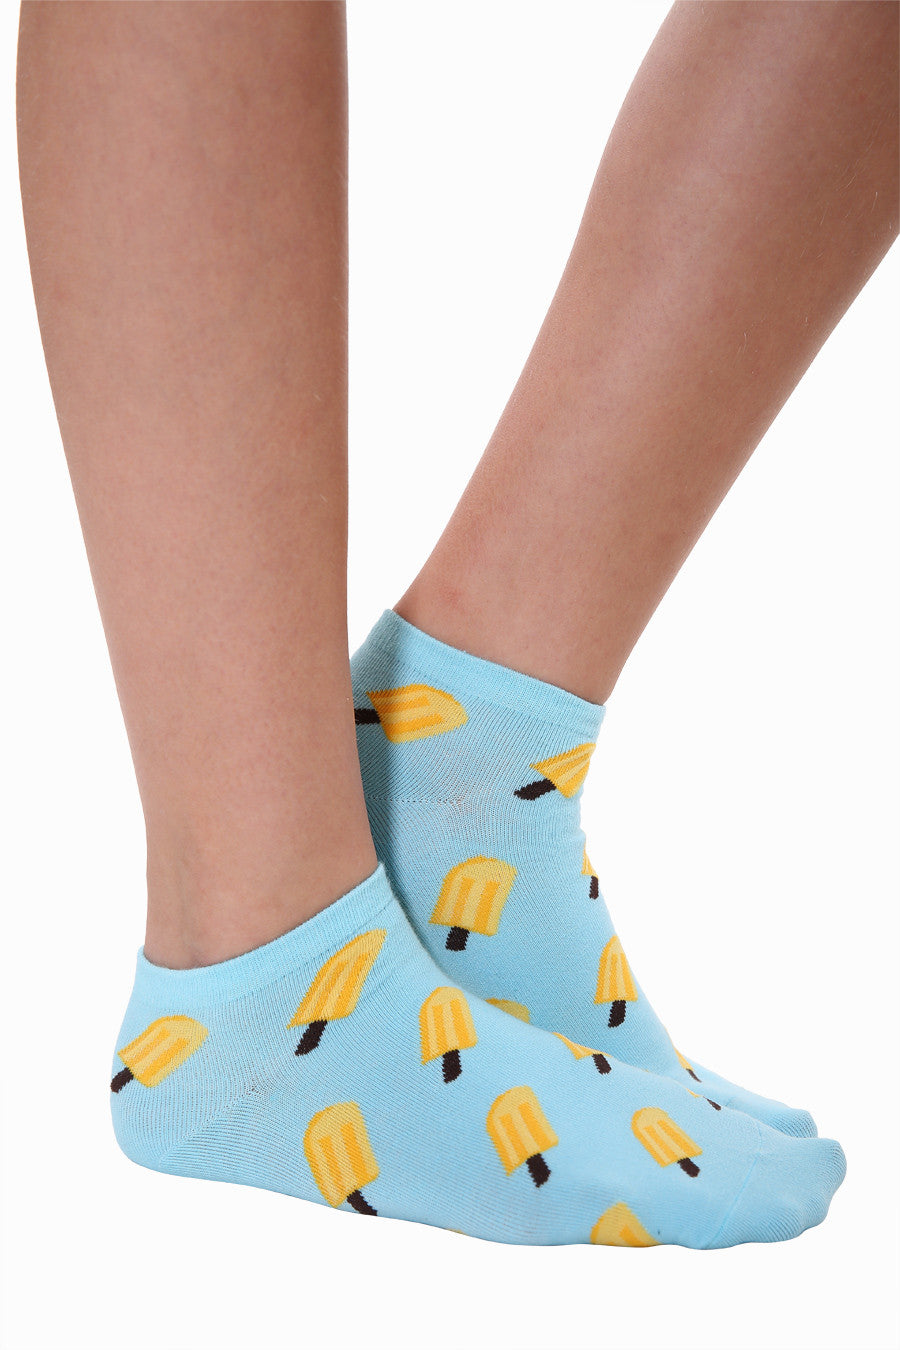 Cute Ice-Cream Socks